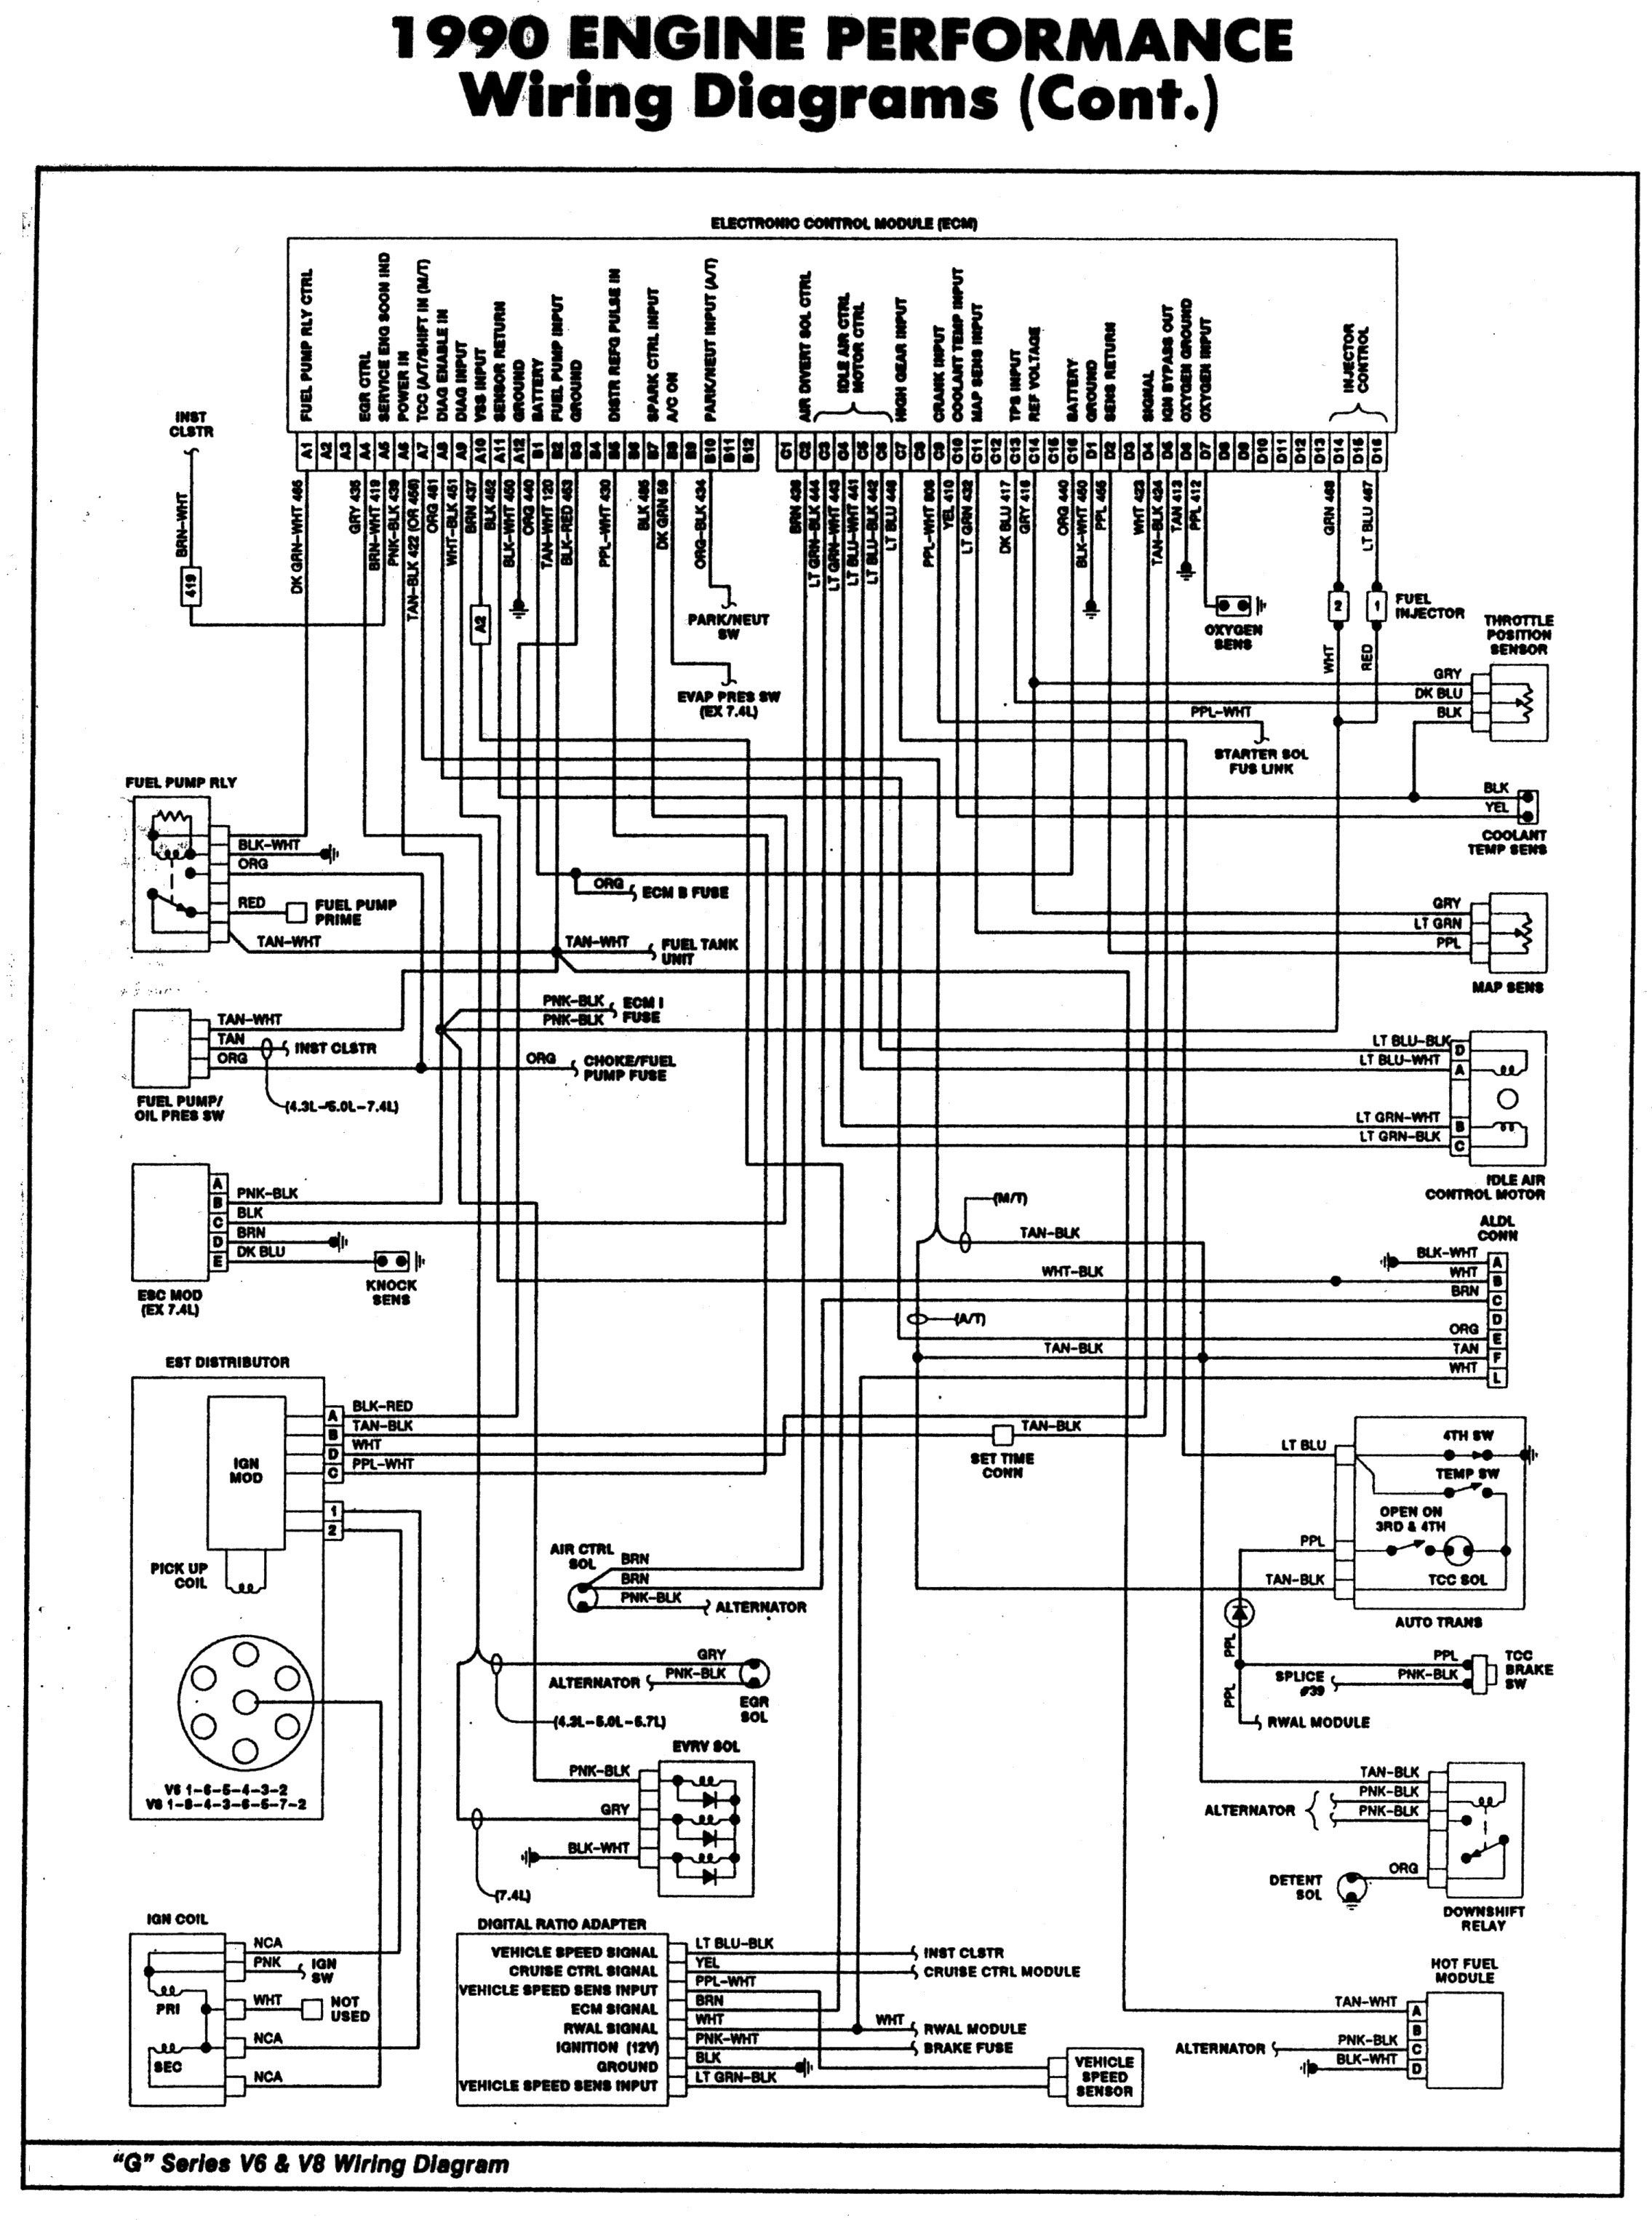 89 Gmc Sierra Wiring Diagram | Wiring Diagram  K Blazer Wiring Diagram on 89 celebrity wiring diagram, 78 gmc wiring diagram, 89 mustang wiring diagram, 89 camaro wiring diagram, 89 suburban wiring diagram, 97 suburban wiring diagram, maf 2000 blazer diagram, 89 corvette wiring diagram, 2004 taurus wiring diagram, 89 s10 wiring diagram, 89 k1500 wiring diagram, 89 cavalier wiring diagram, 2003 chevy impala wiring diagram, s10 fuse box diagram,